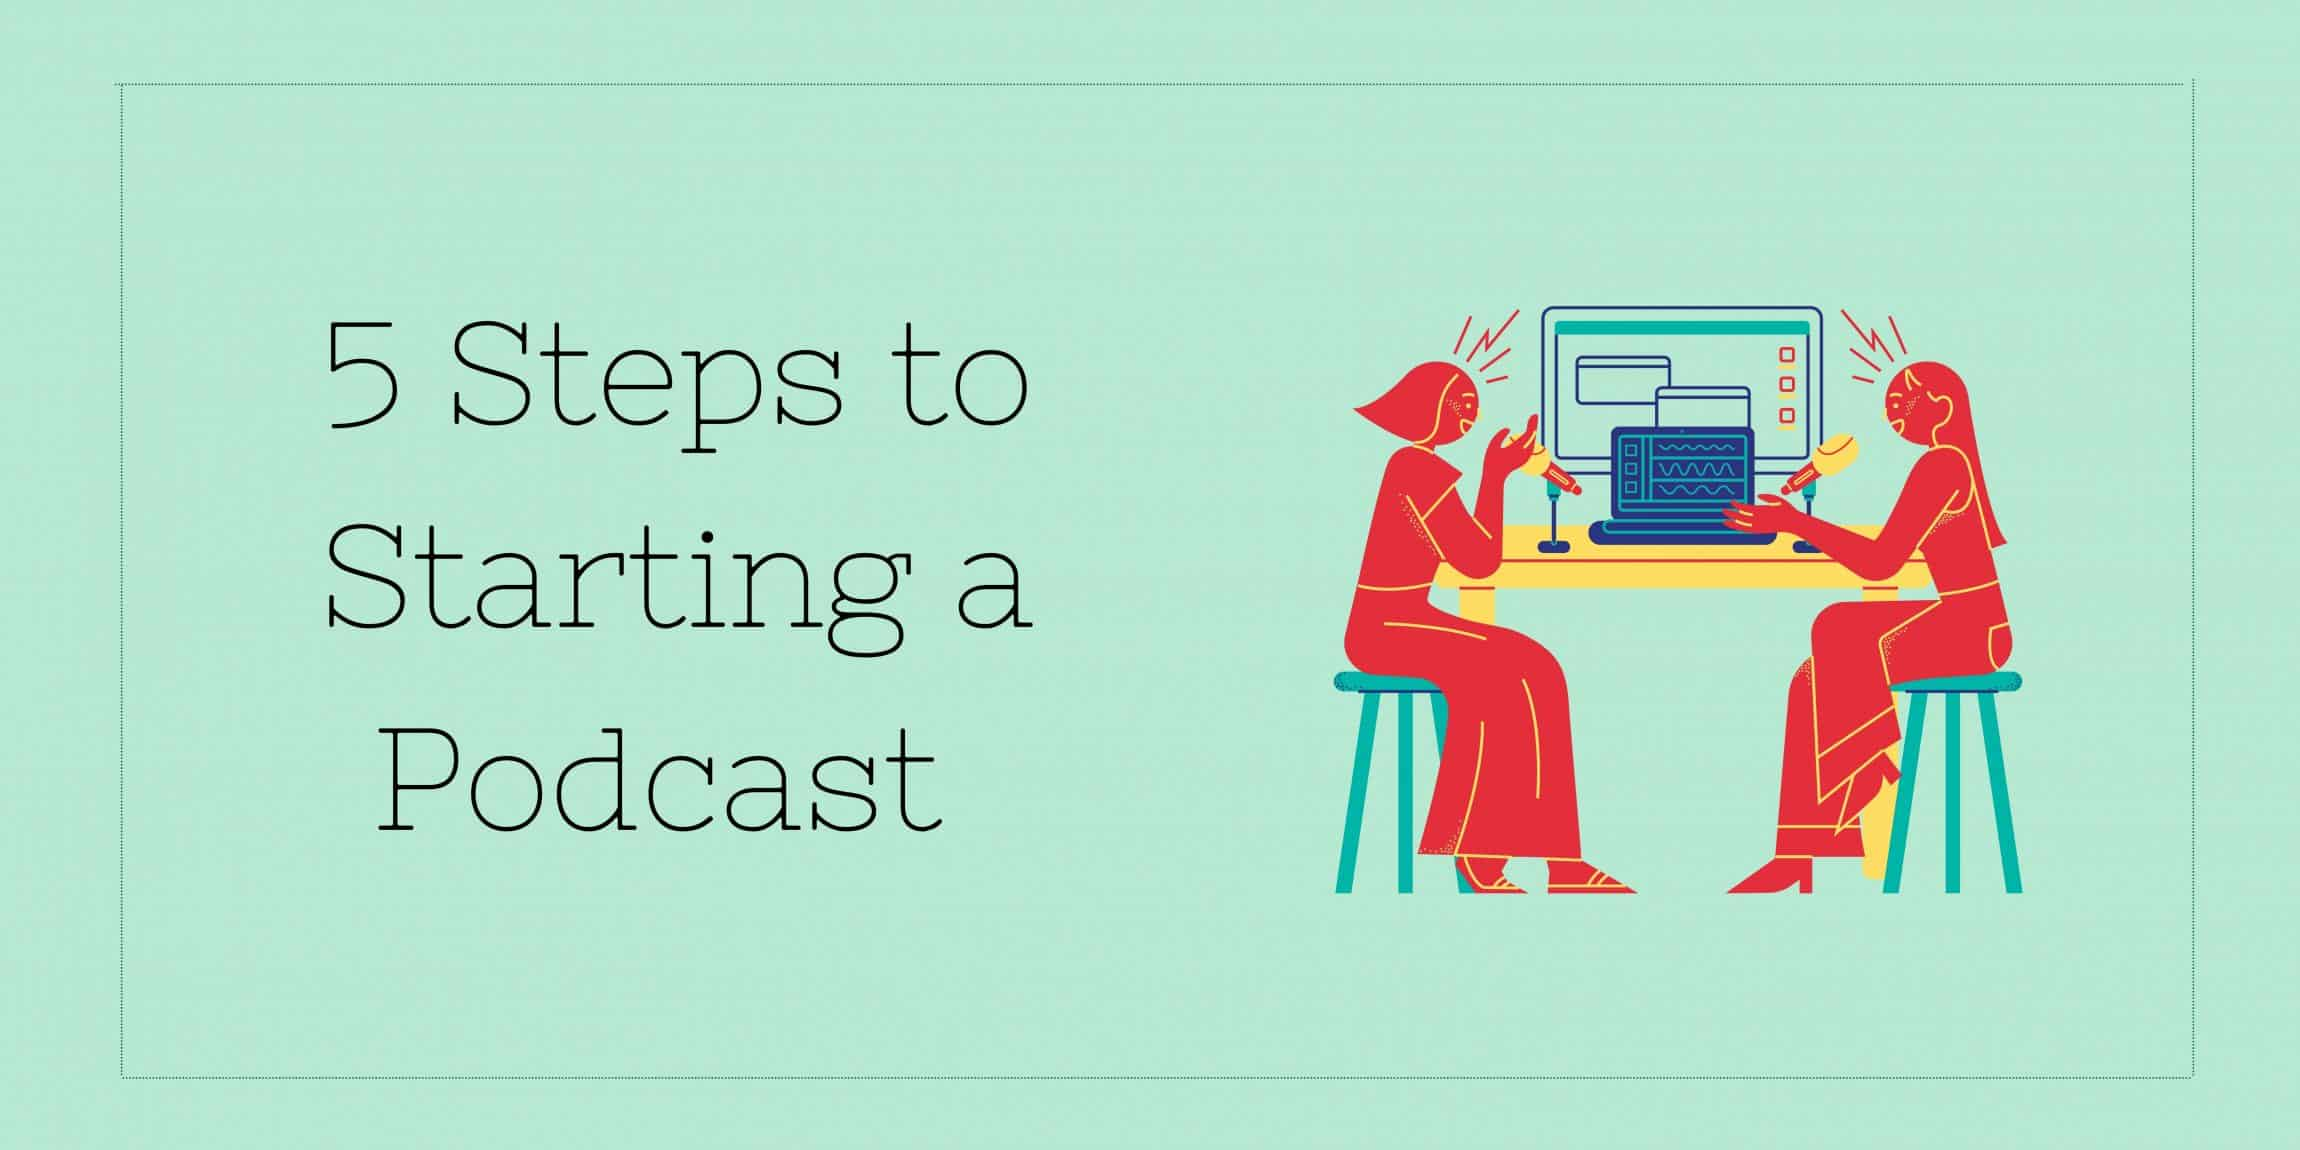 5 Steps to starting a podcast